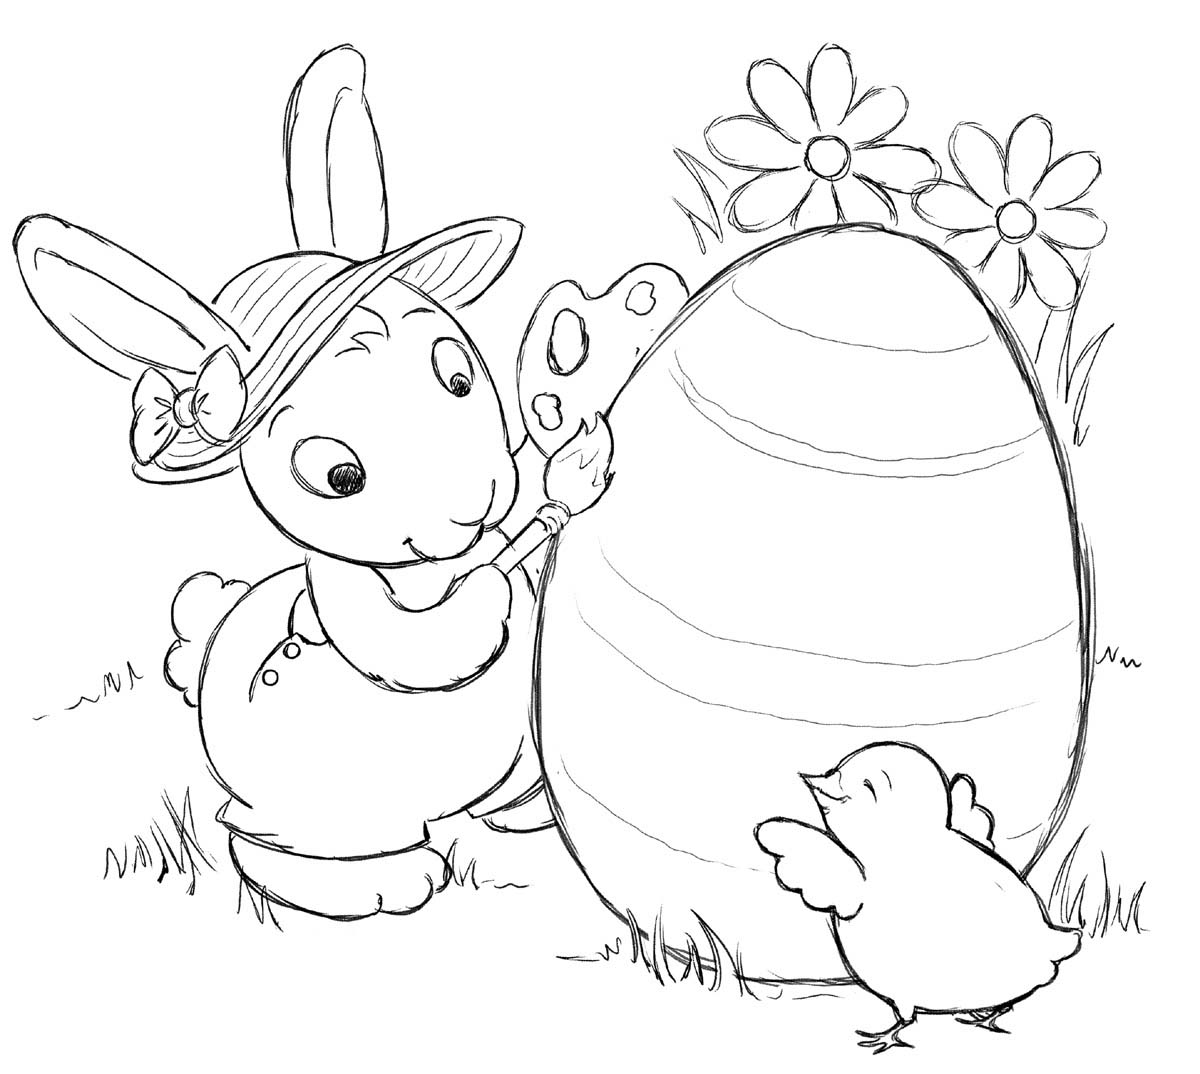 bunny coloring book bunny coloring pages best coloring pages for kids bunny book coloring